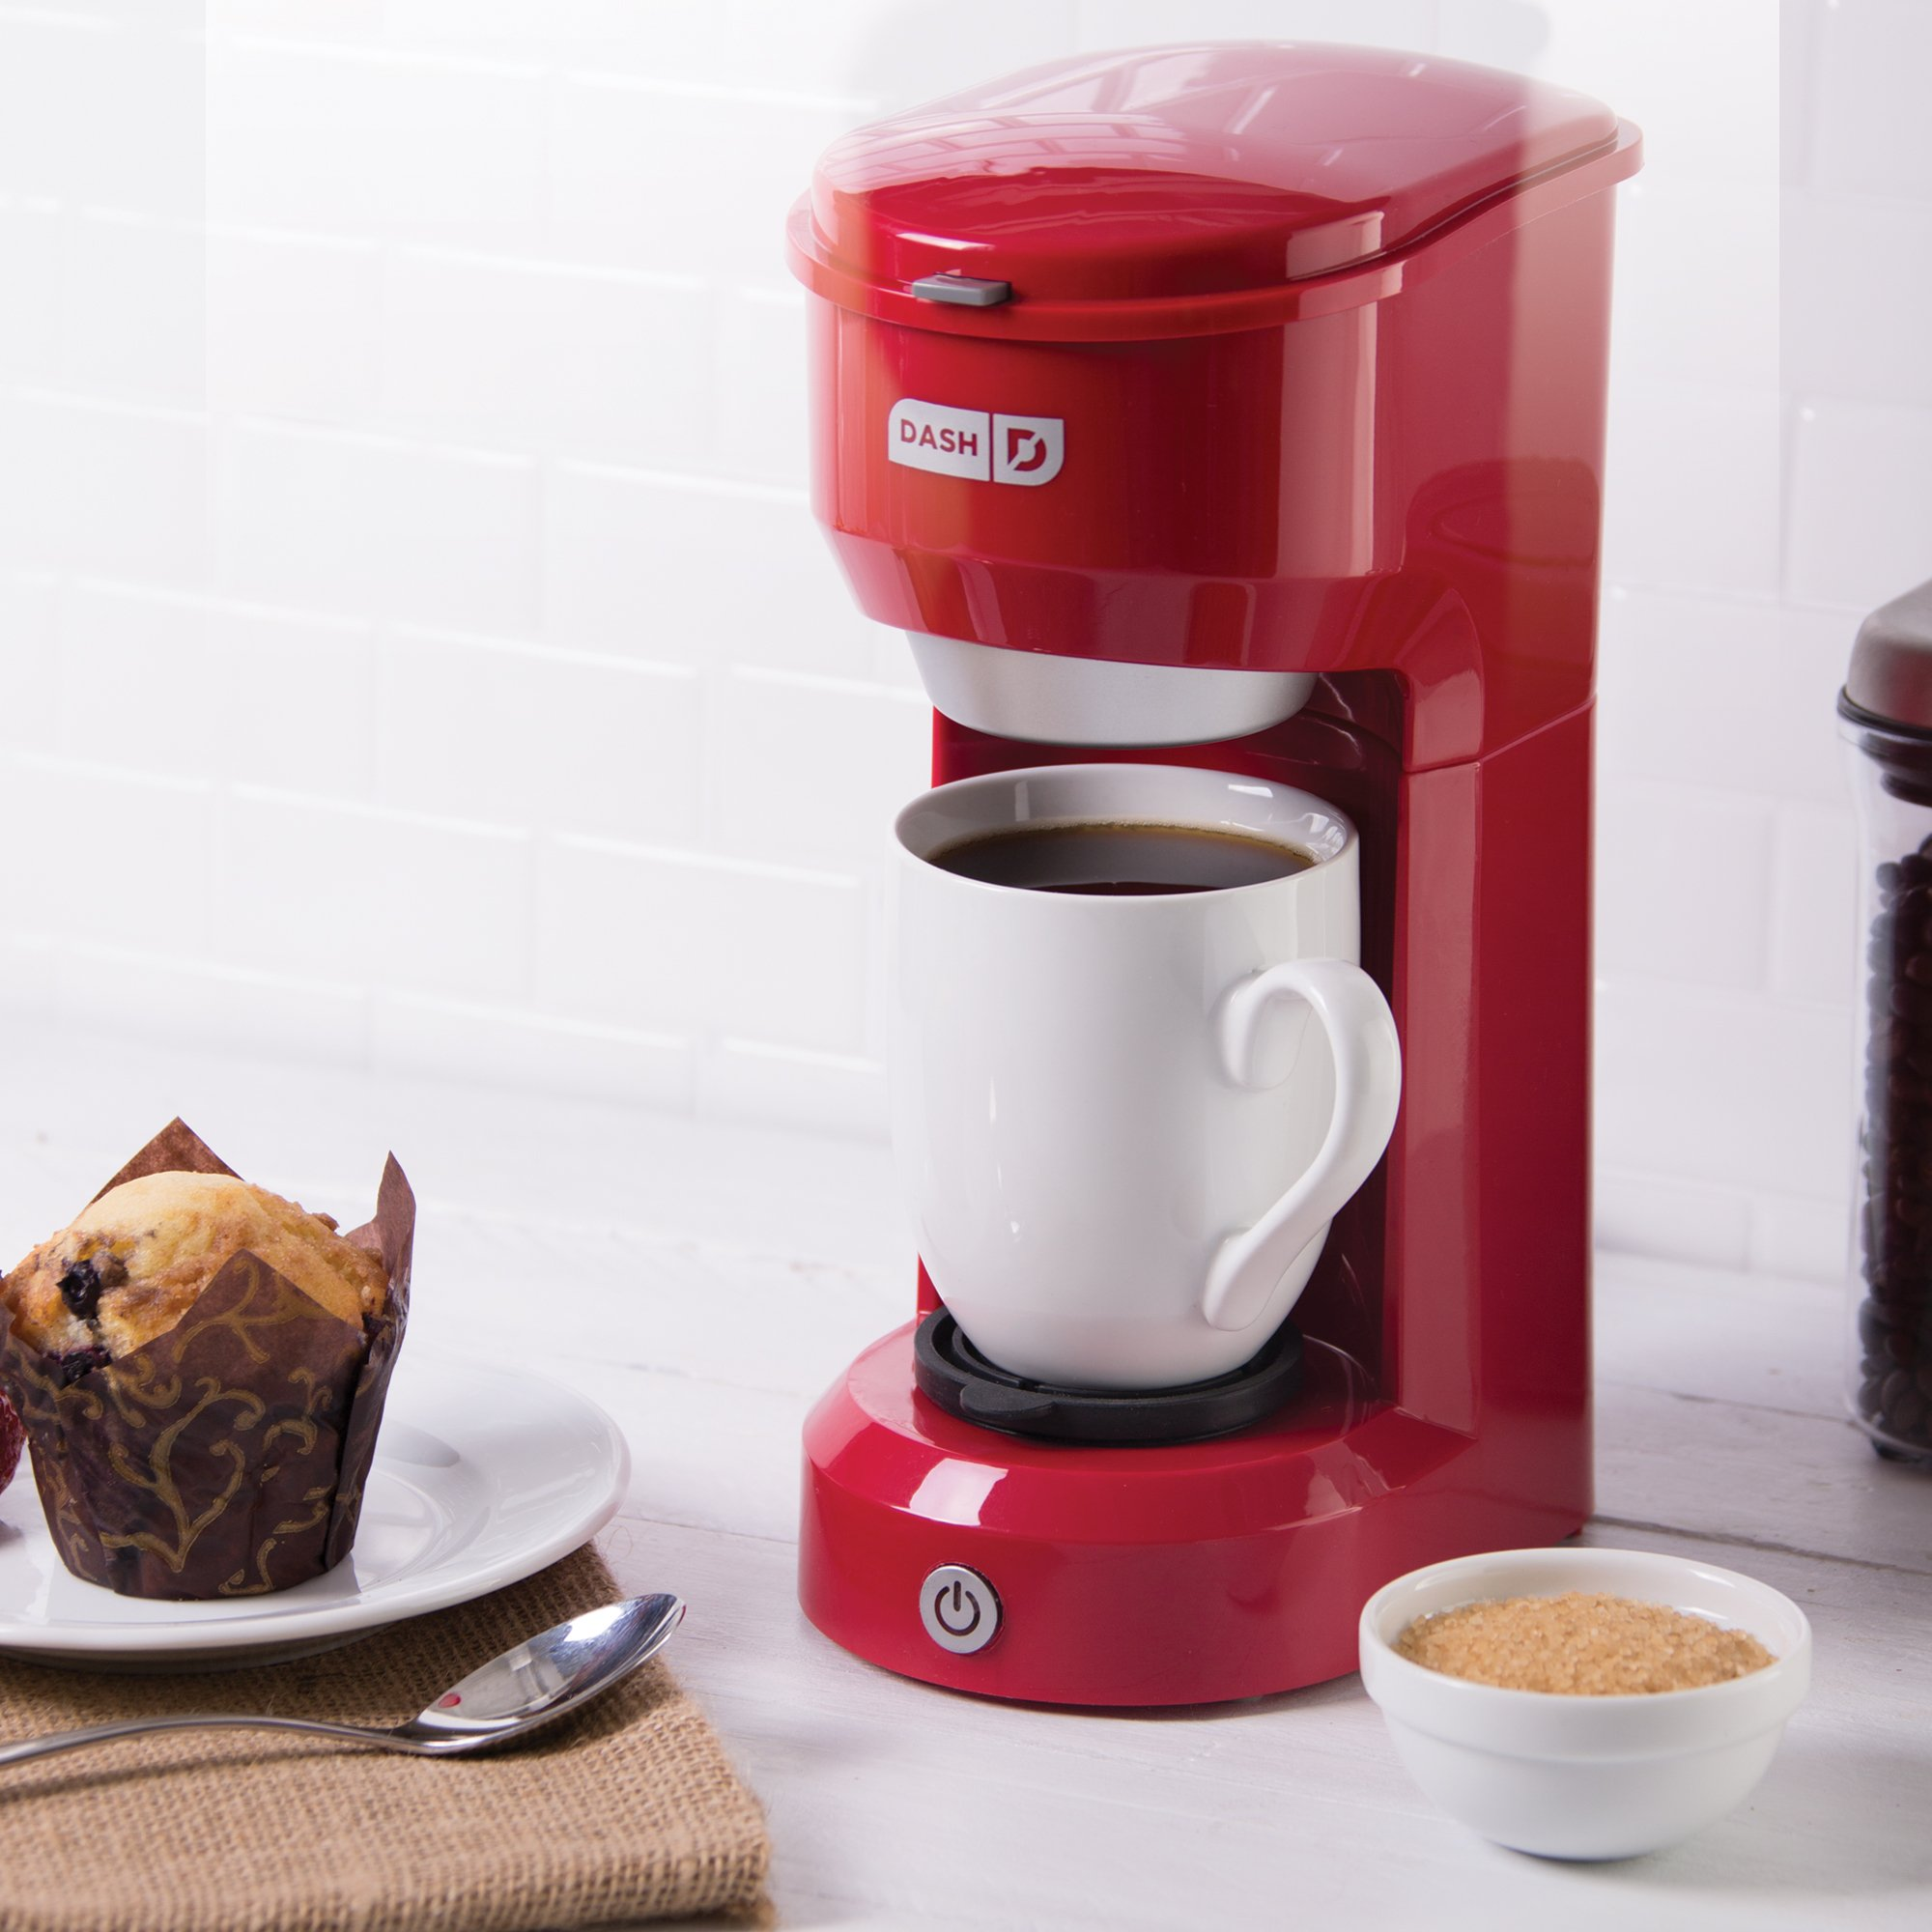 Dash DPC100RD Coffee Maker, Red